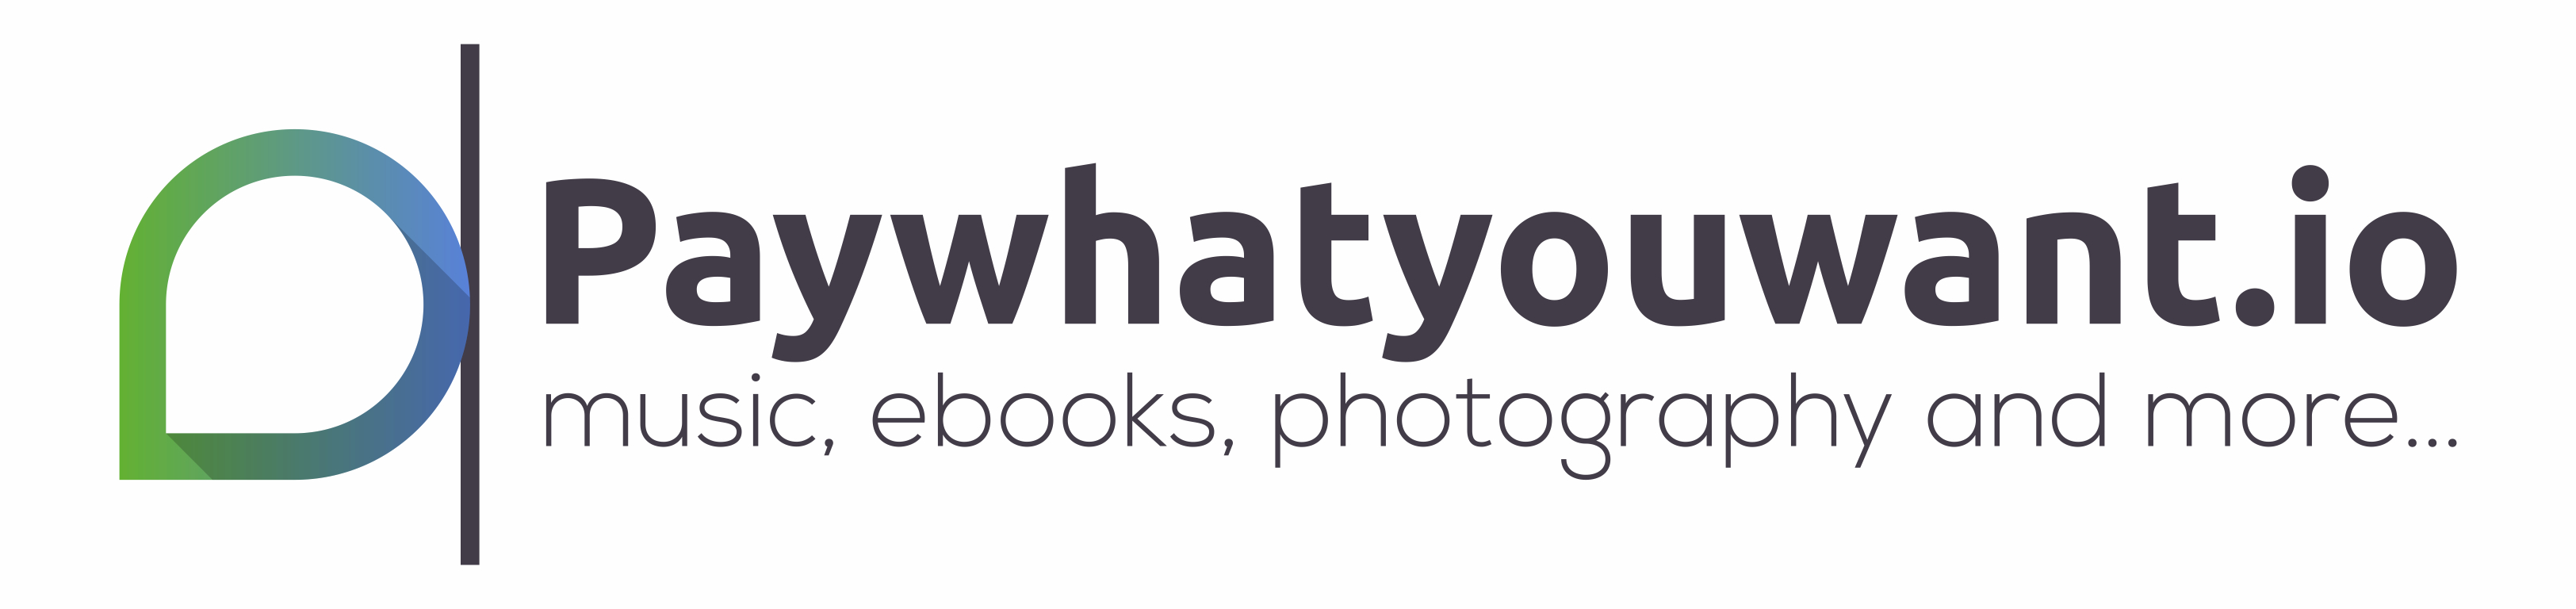 Music, podcasts, ebooks, photography and more - is Paywhatyouwant.io the future of online commerce?